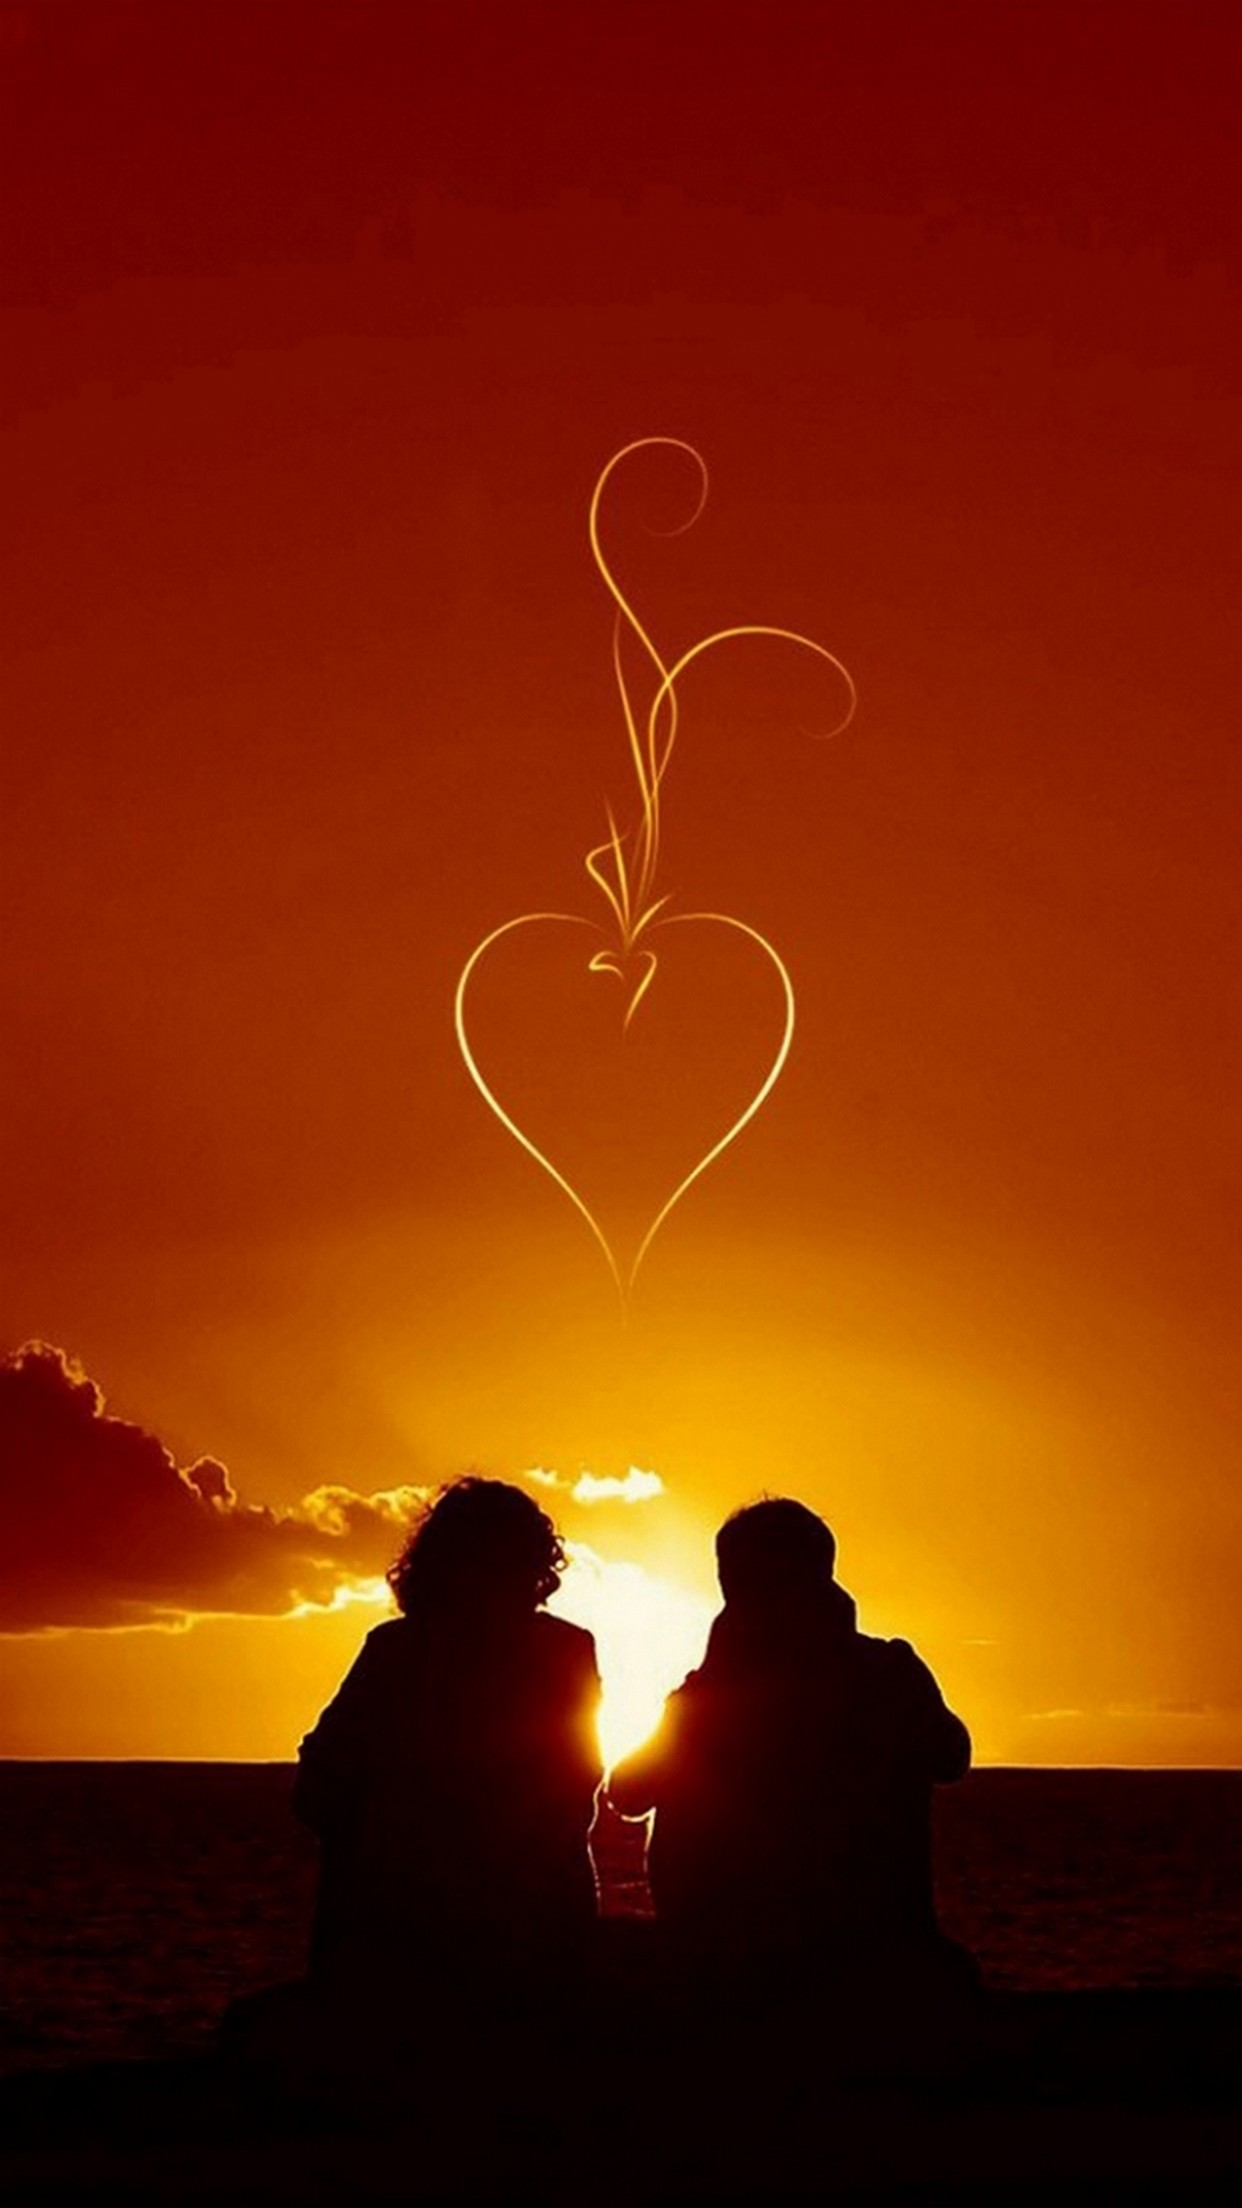 Love Wallpaper Portrait : Love Wallpapers Images ??